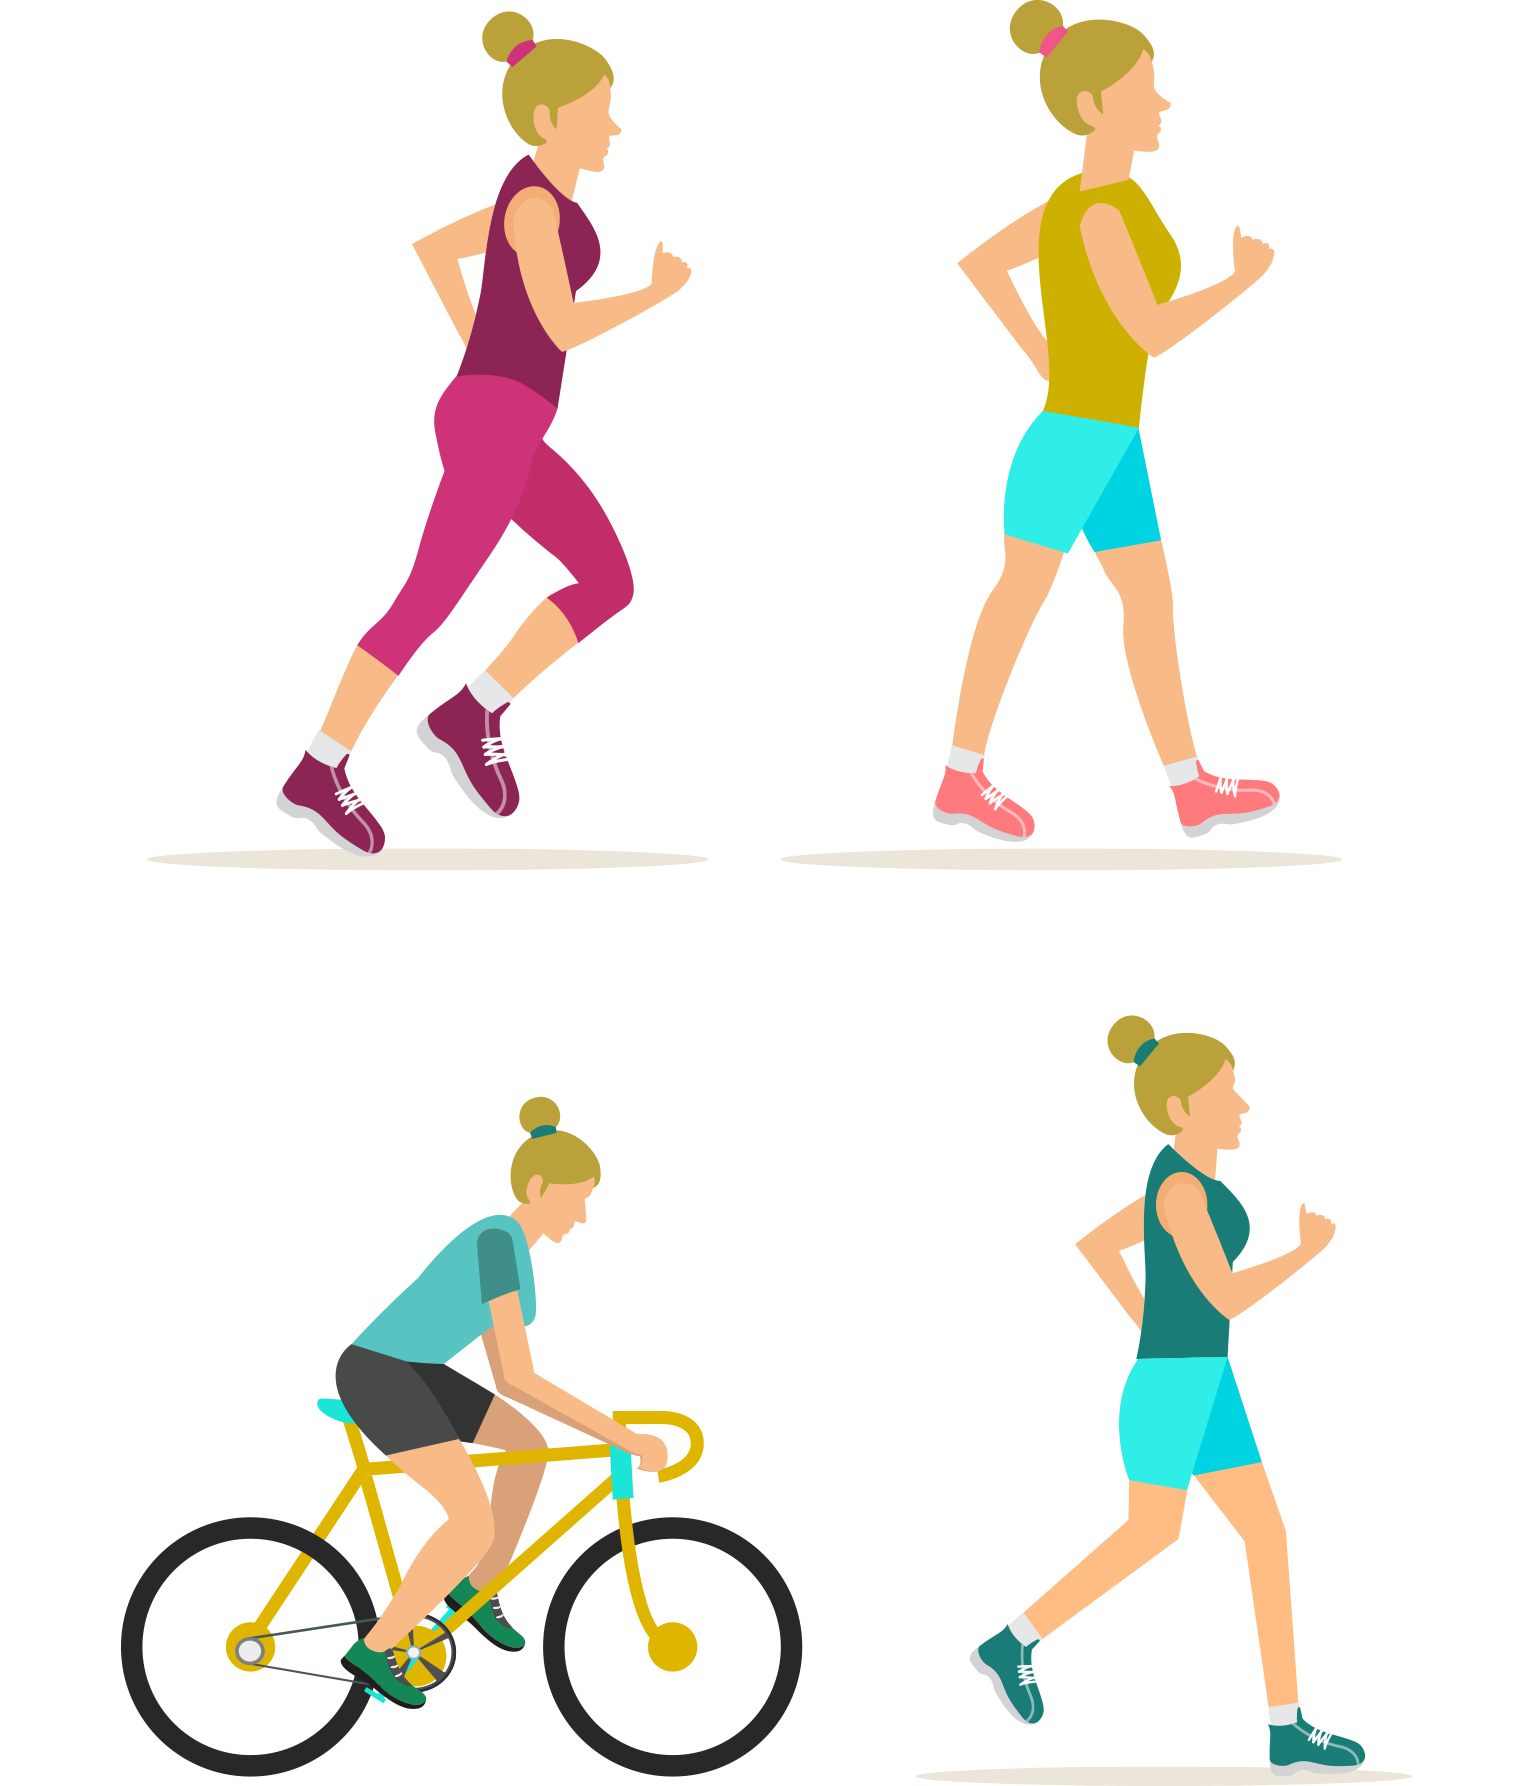 Physical fitness centre stretching. Clipart exercise woman exercise